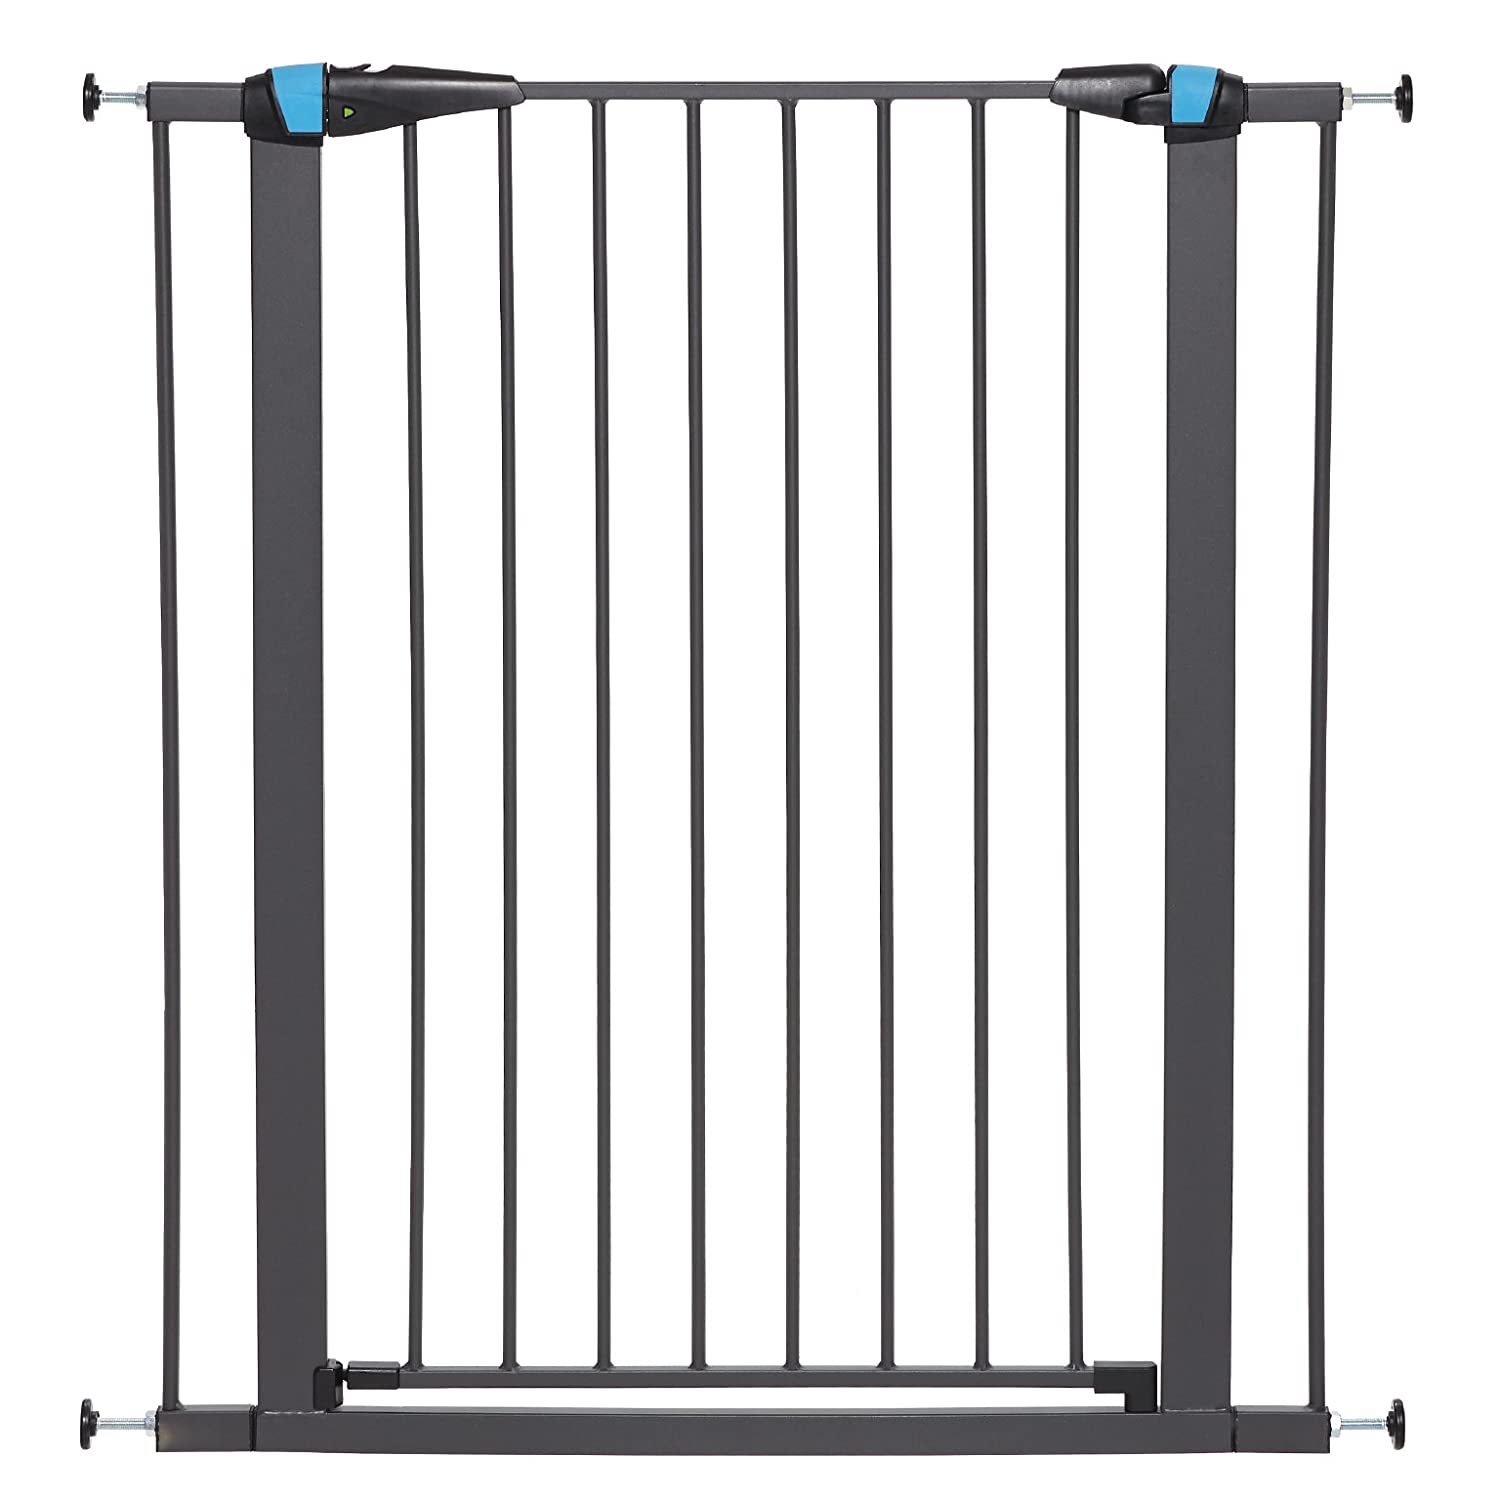 "MidWest Homes for Pets Walk-Thru Steel Pet Gate w/Safety Glow Frame; 29"" & 39"" Tall Pet Gates in Soft White & Textured Graphite"